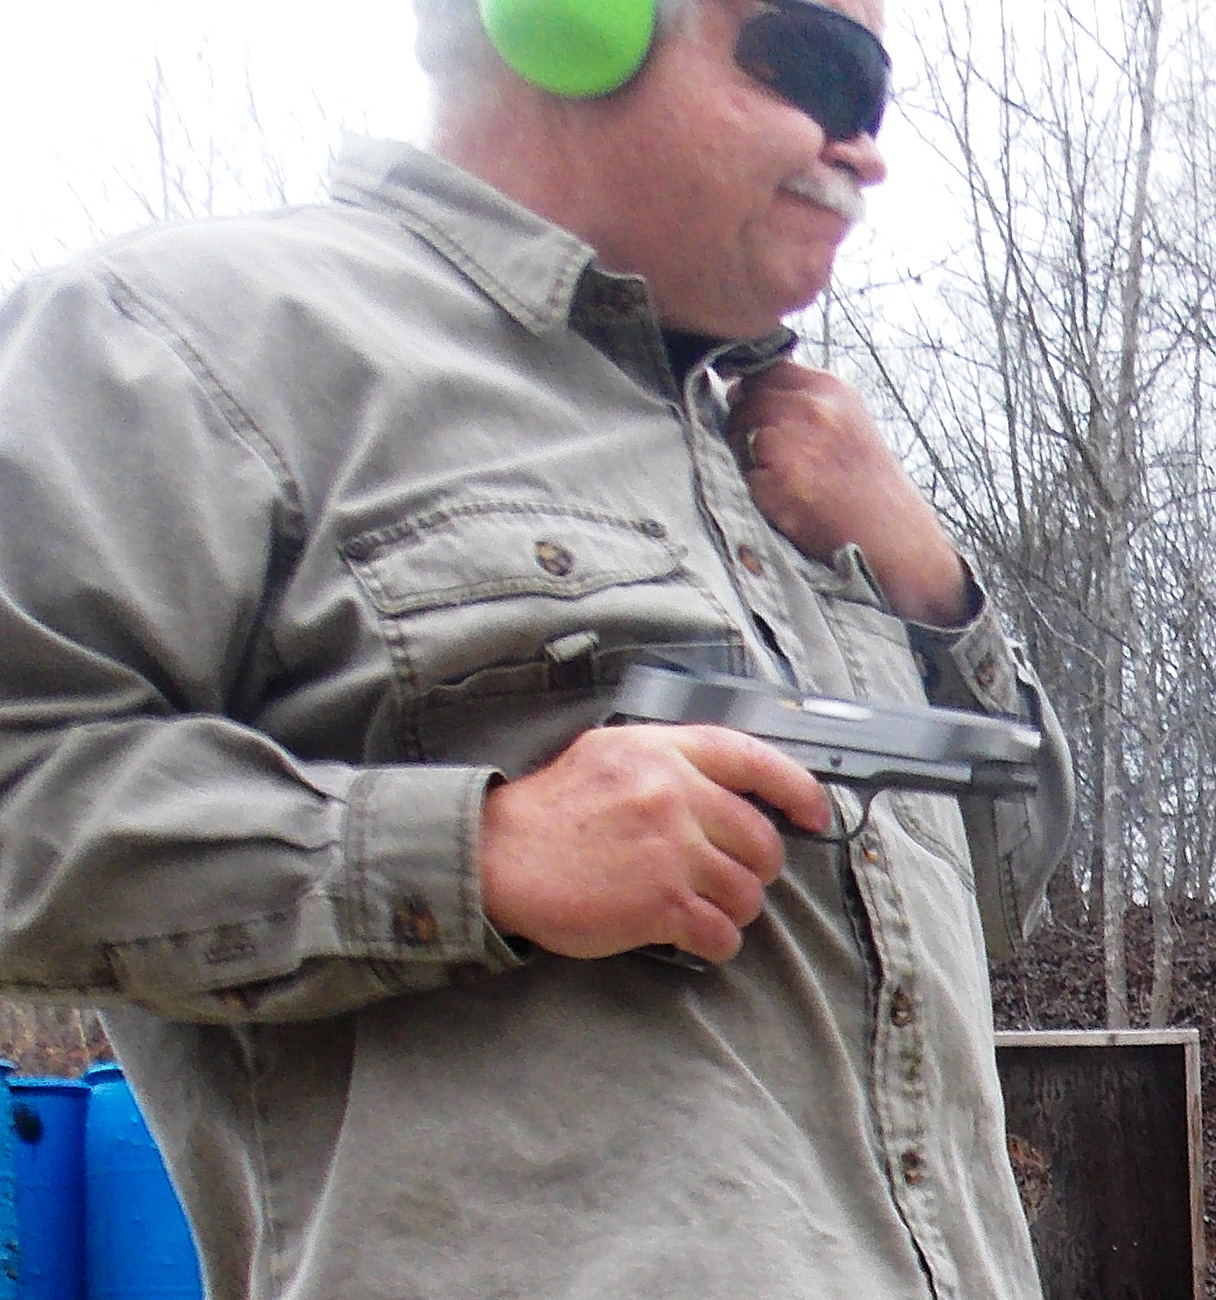 Bob Campbell shooting a 1911 pistol from a retention position